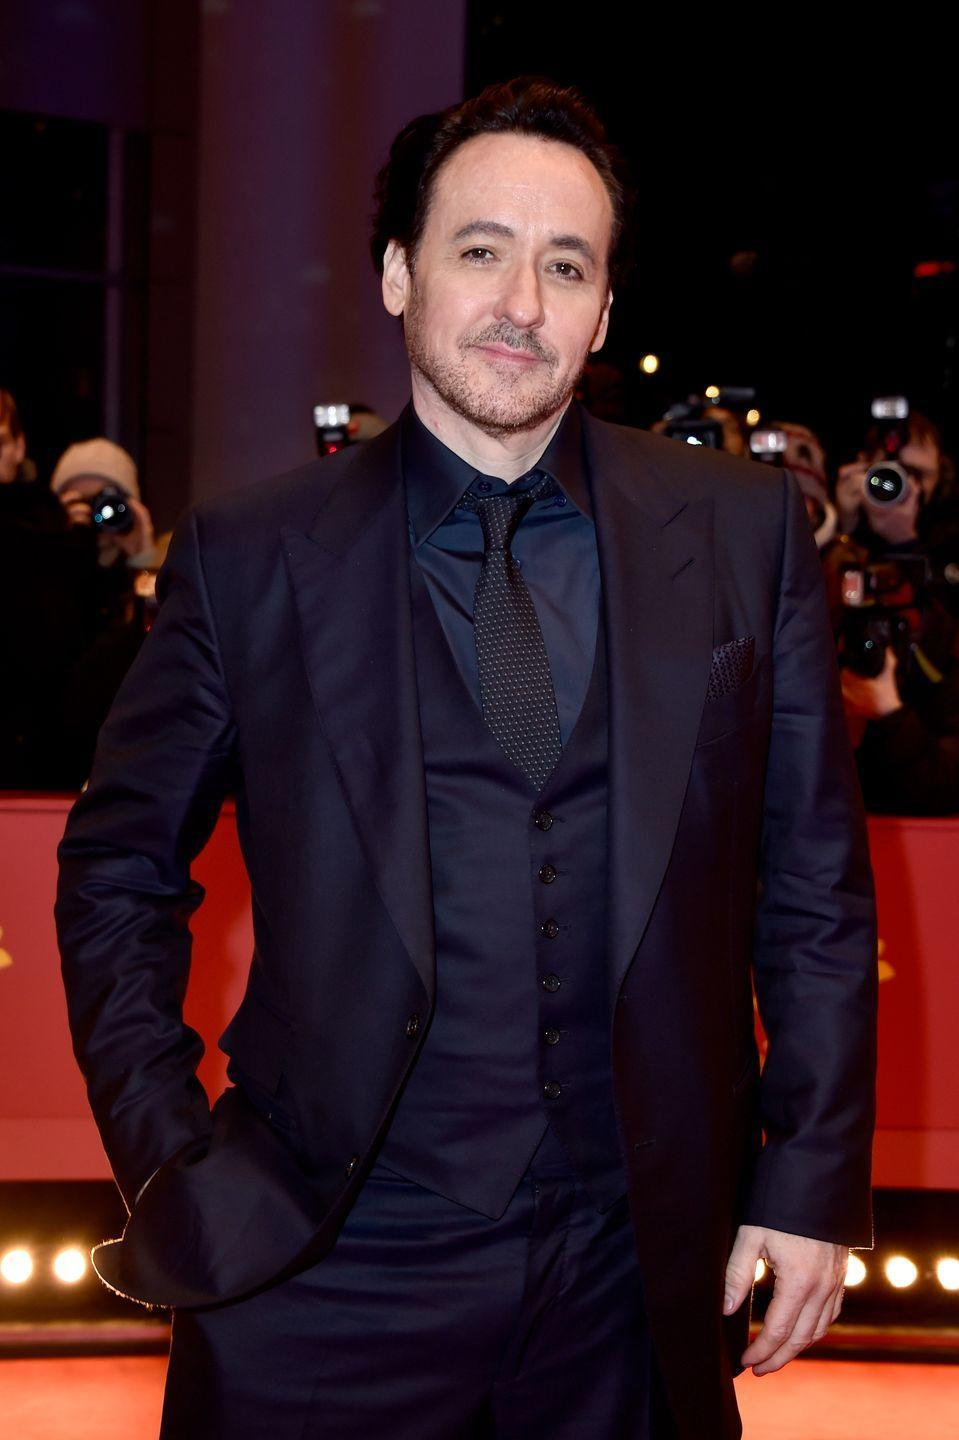 """<p>One of the most successful stars of the decade, John went on to star in countless big films ranging from the eerie <em>1408</em> (2007) to the action-packed <em>2012</em><span class=""""redactor-invisible-space""""> (2009) to the romantic and hilarious <em>High Fidelity</em> (2000). And he's still got that same great smirk.</span></p>"""